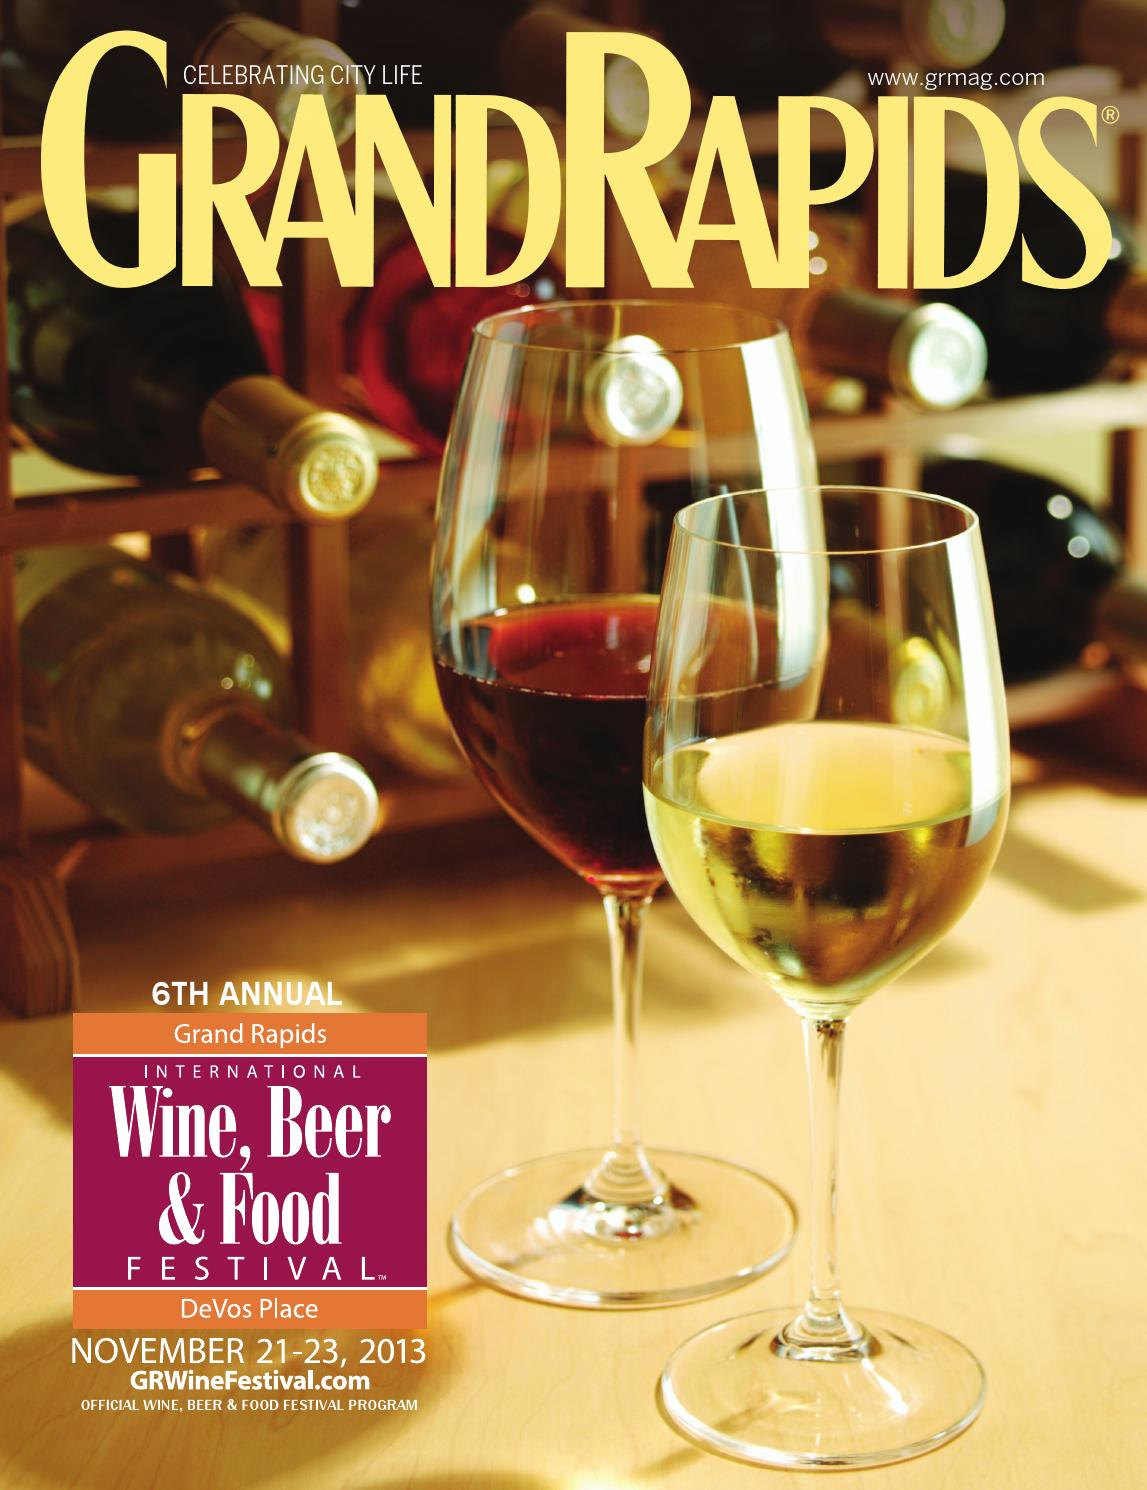 2013 Grand Rapids International Wine, Beer & Food Festival Program ...